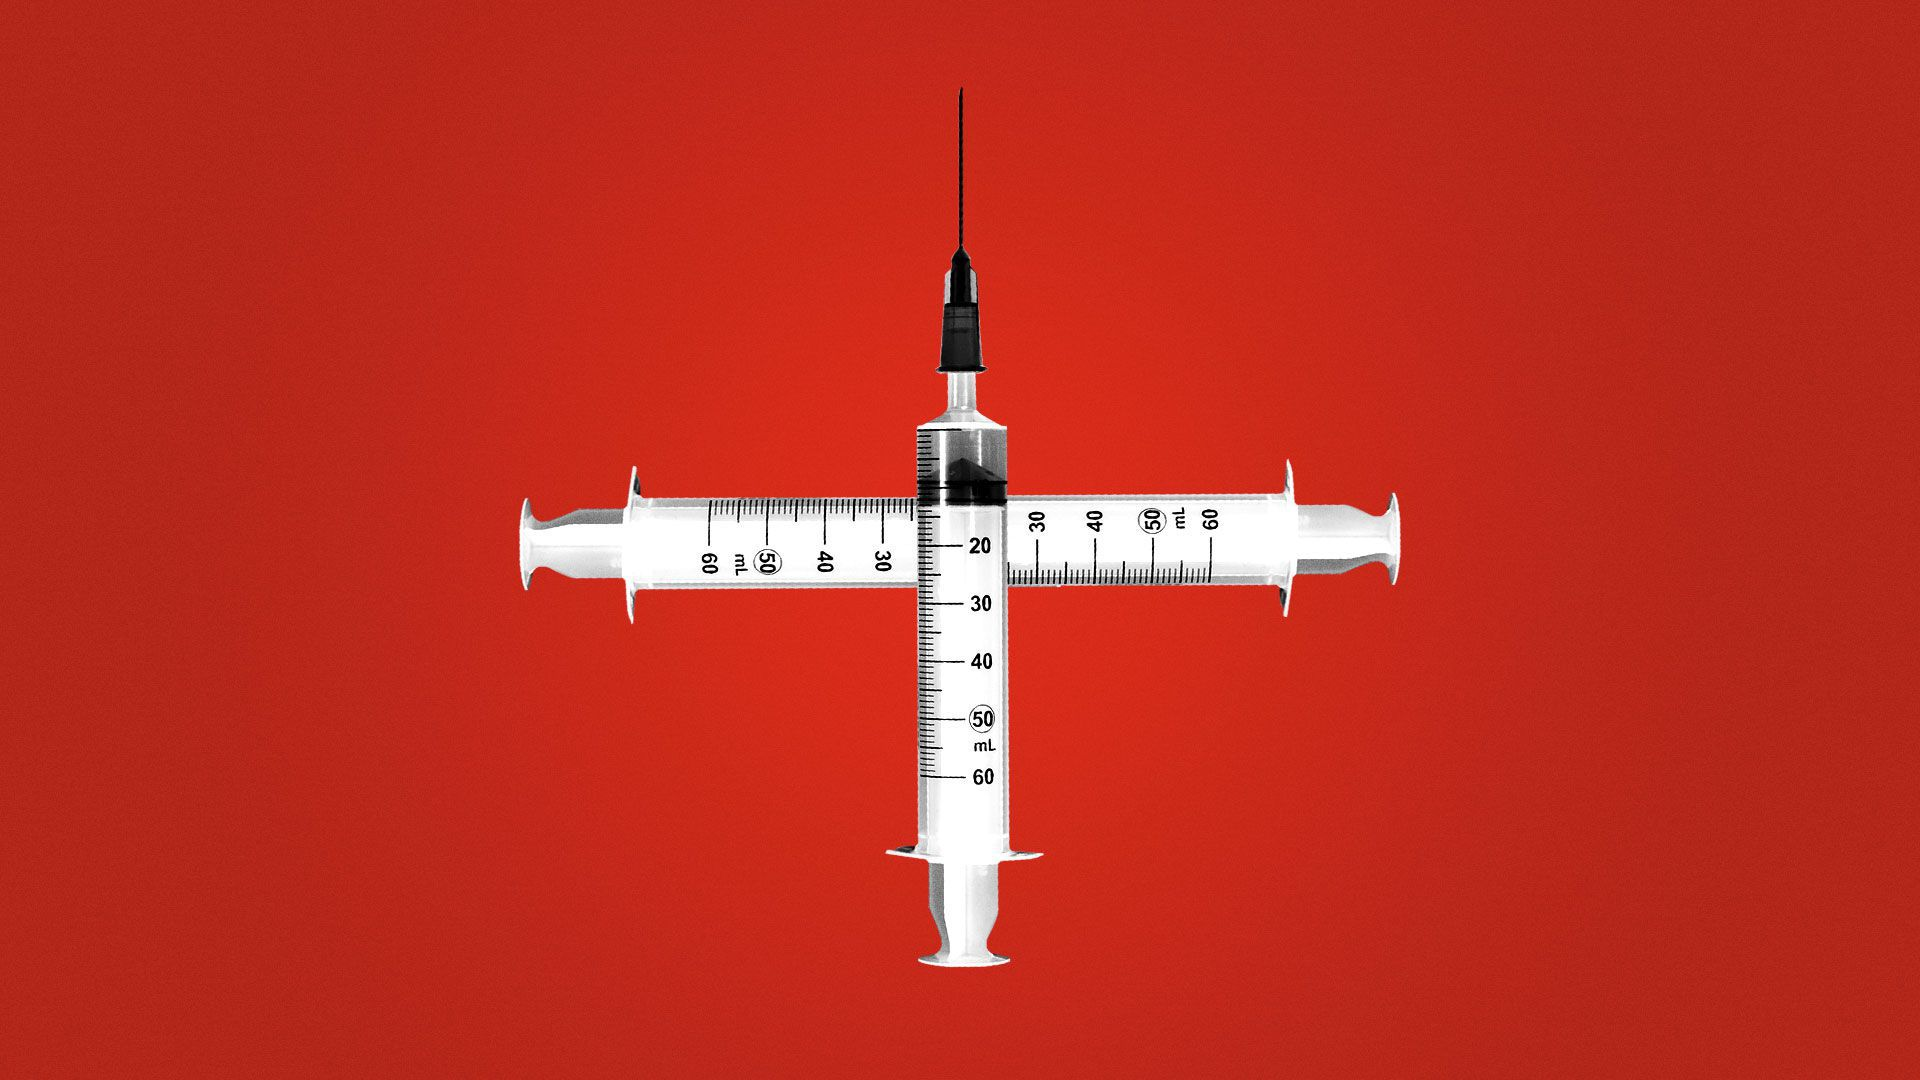 Illustration of syringes forming a health plus/cross